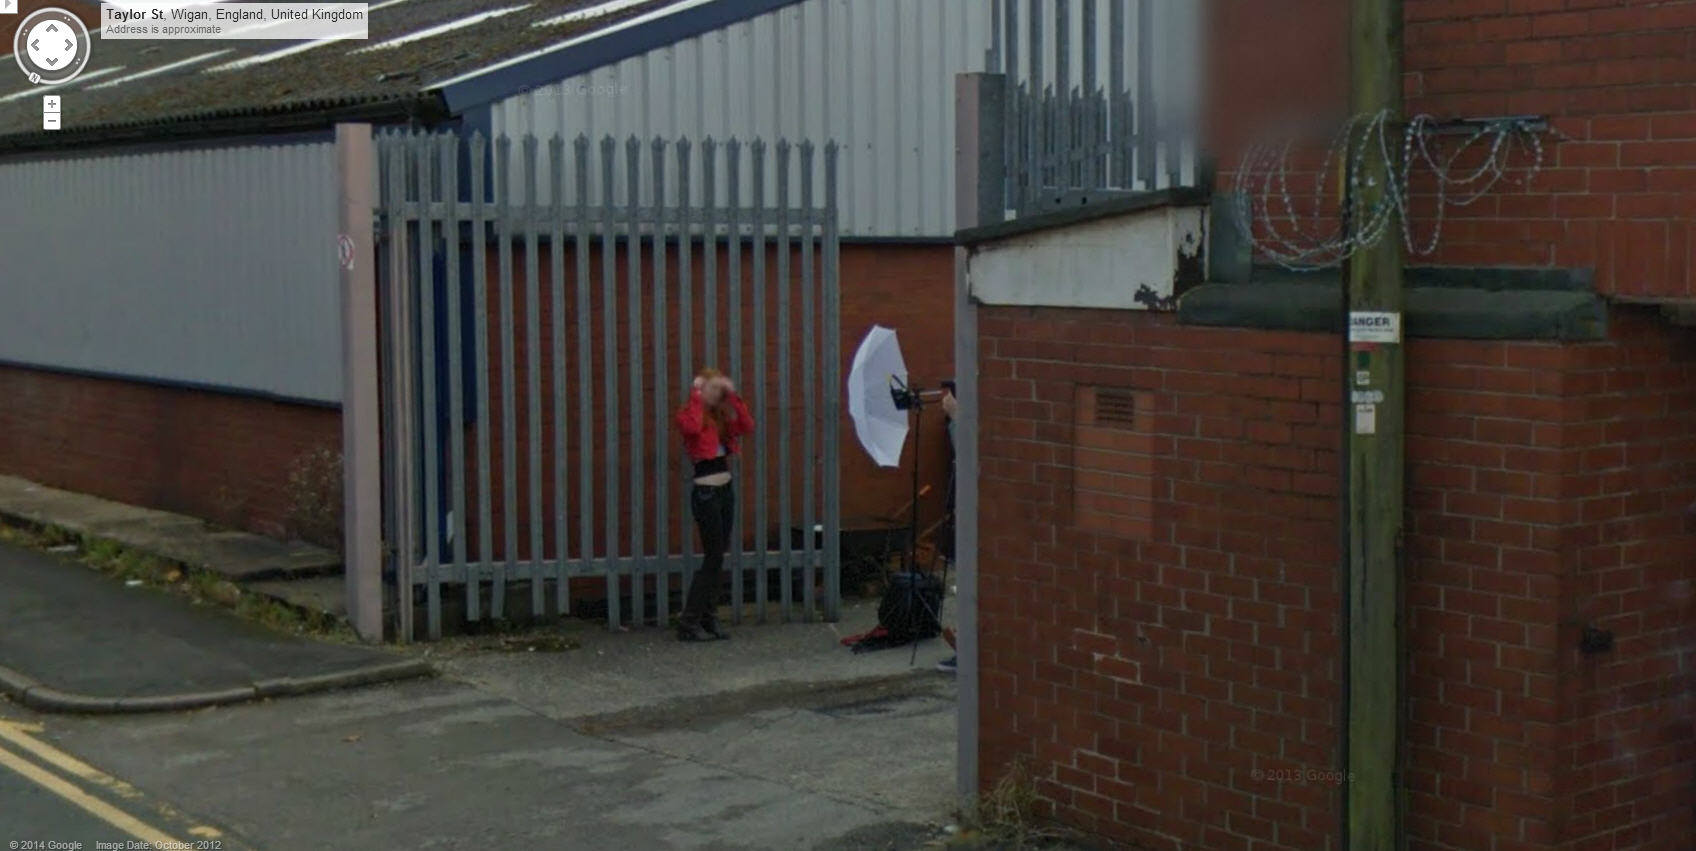 Pretty UK Girl Getting Shot with Umbrella Ray Gun in a back alley